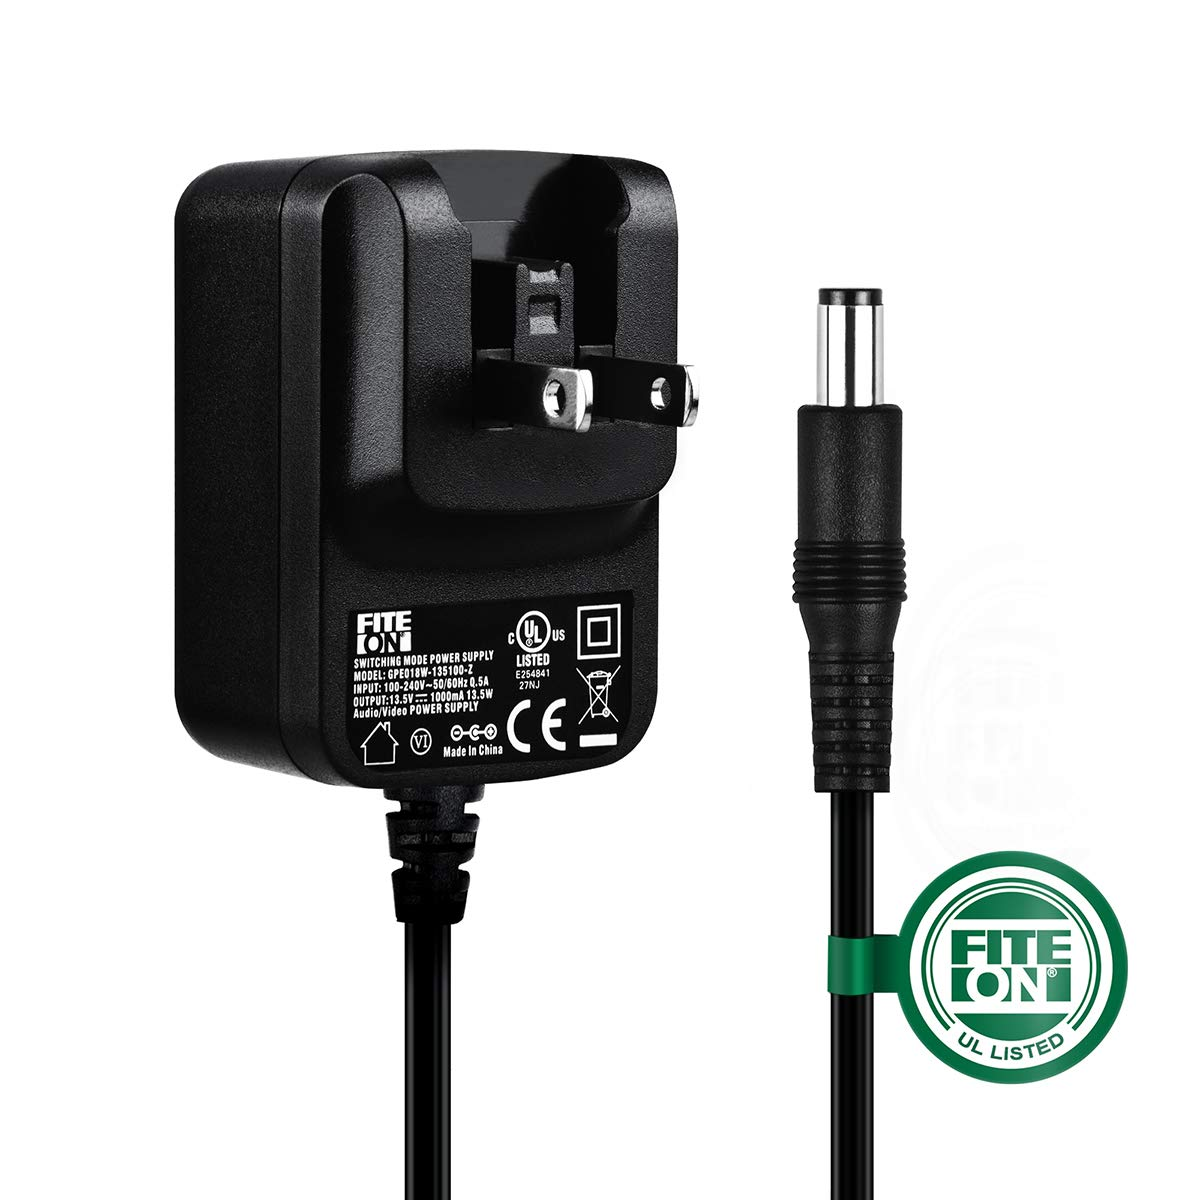 FITE Adapter Compatible Starter Charger